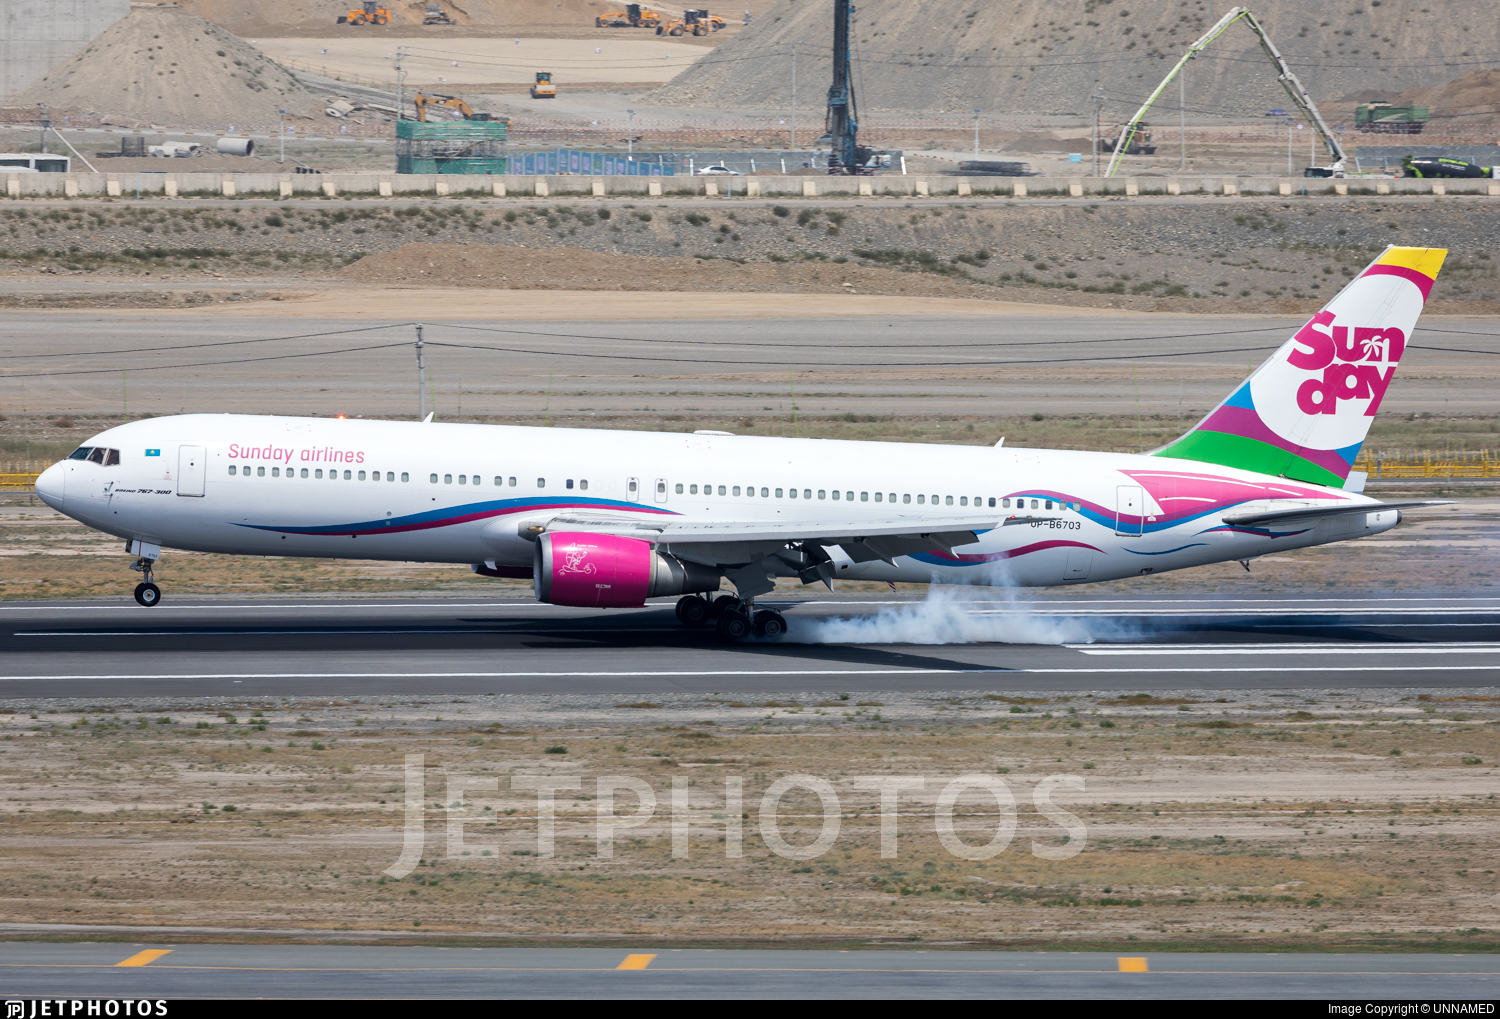 UP-B6703 - Boeing 767-332(ER) - Sunday Airlines